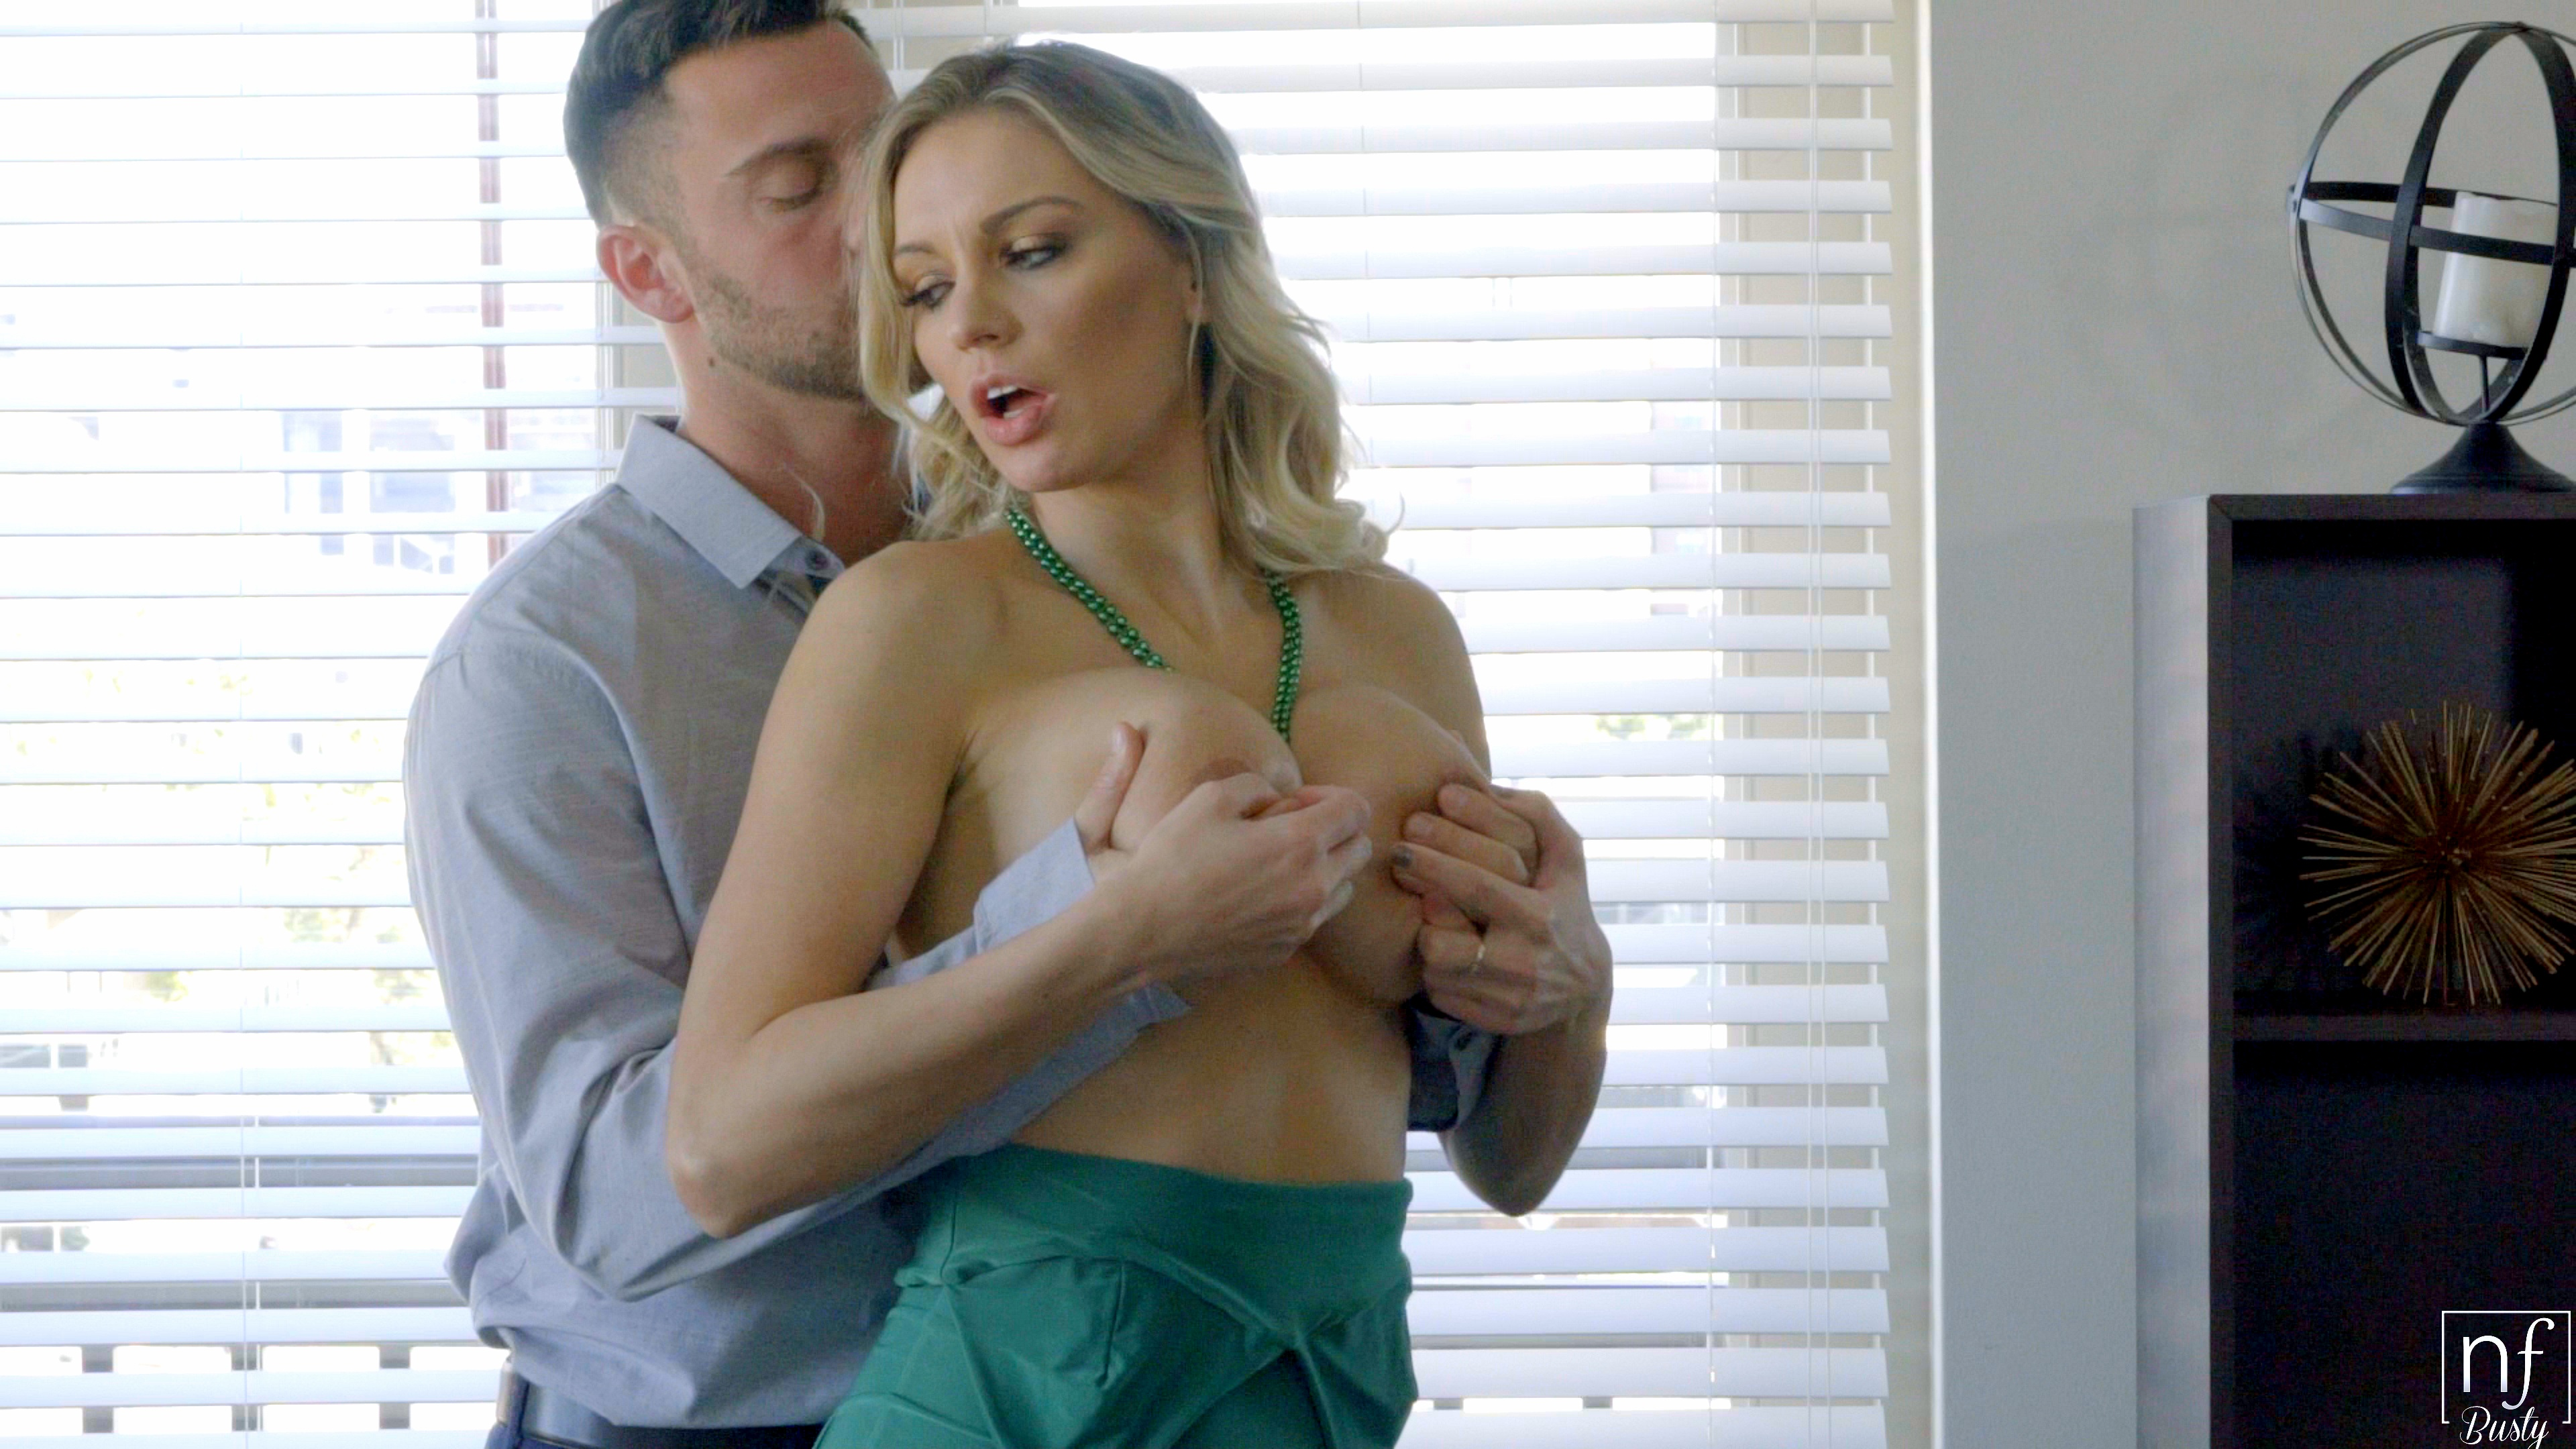 NFBusty.com - Kenzie Taylor,Seth Gamble: Lucky In Love - S8:E10